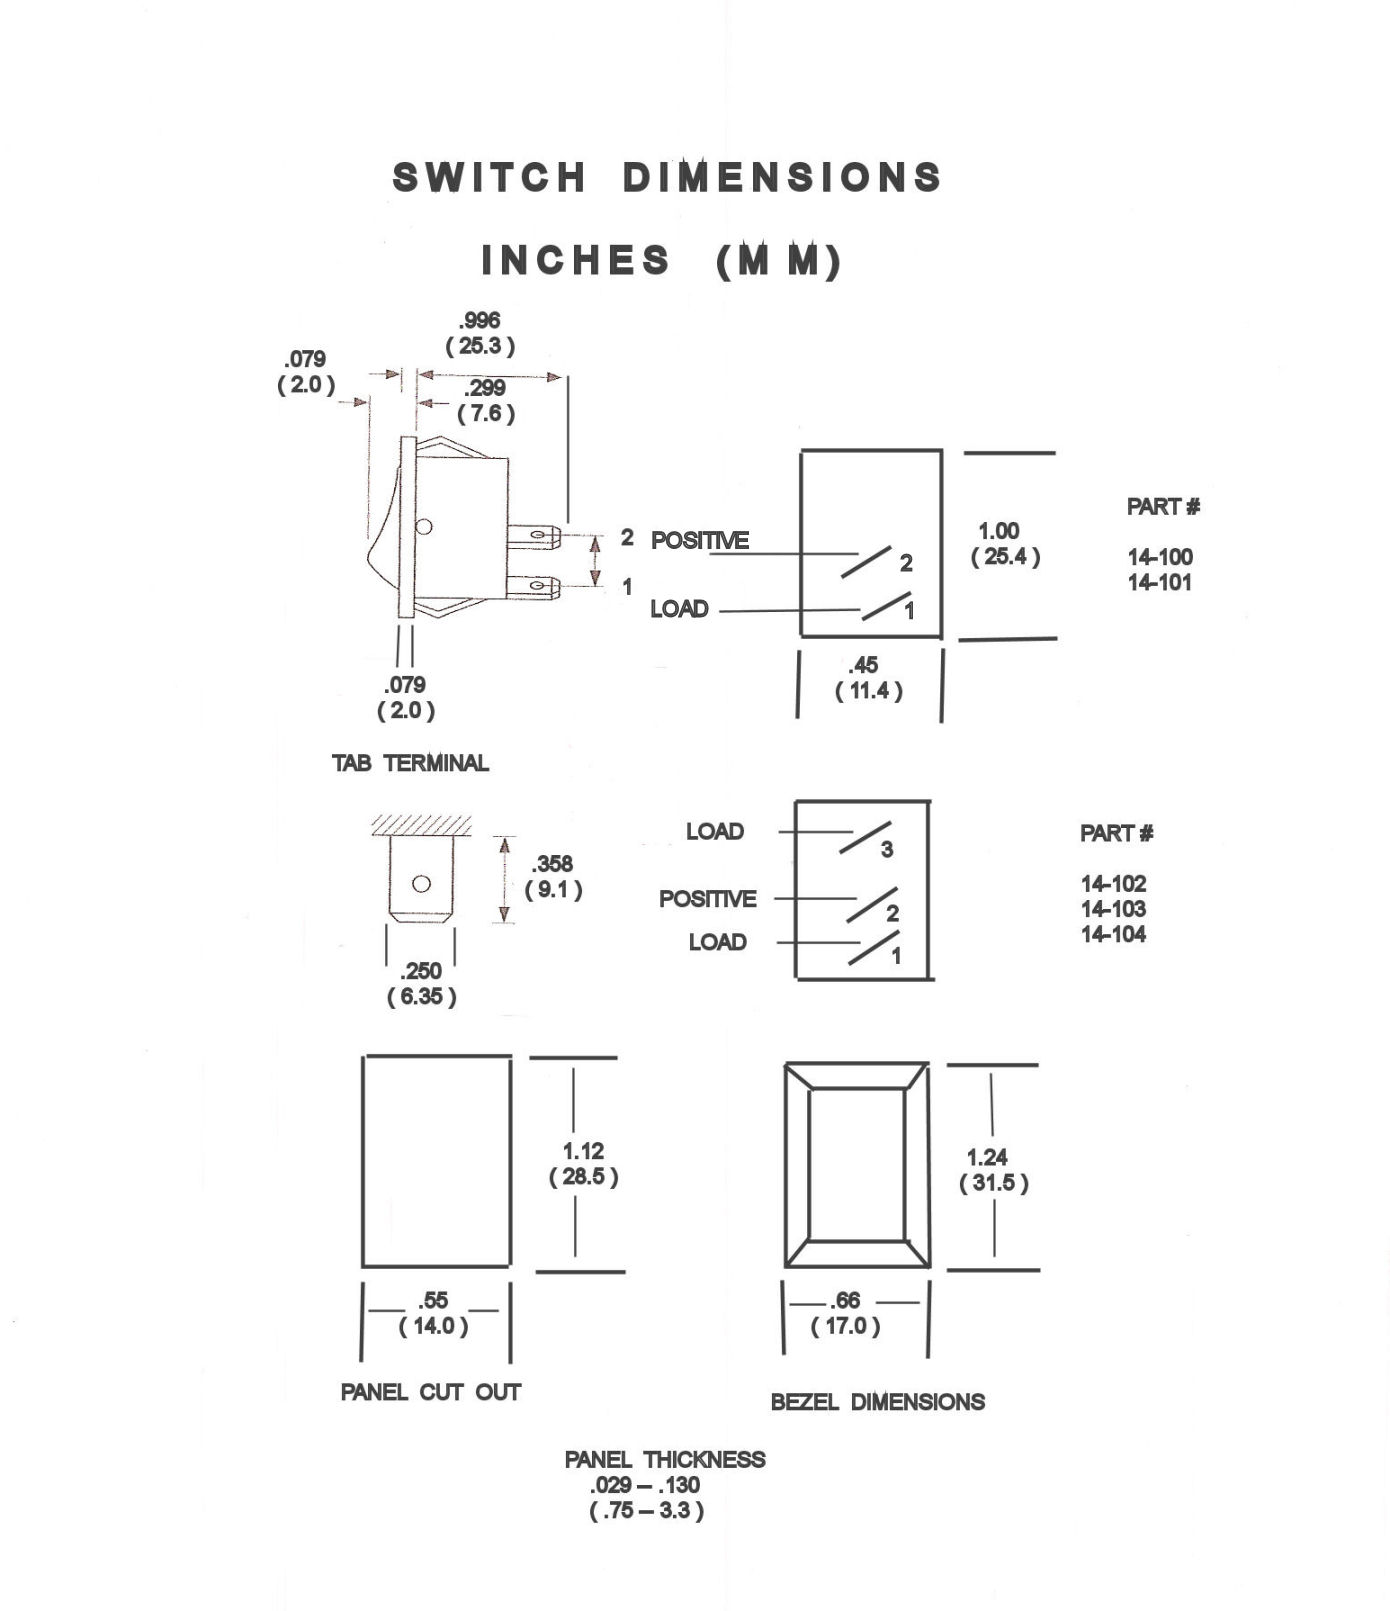 illuminated rocker switch wiring diagram sony cdx gt210 cessna master 35